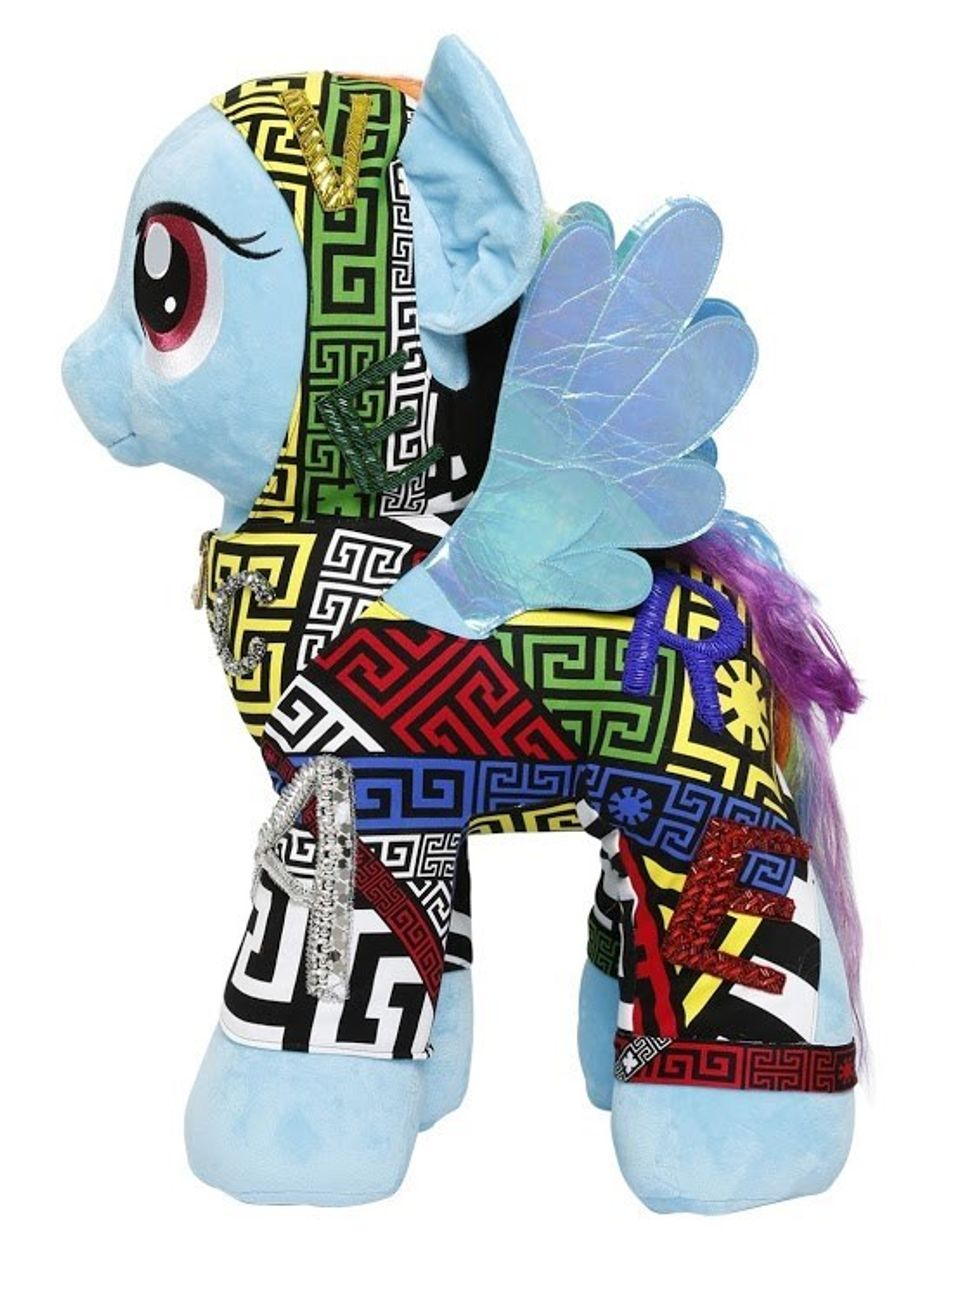 Rick Owens and Other Designers Salute My Little Pony